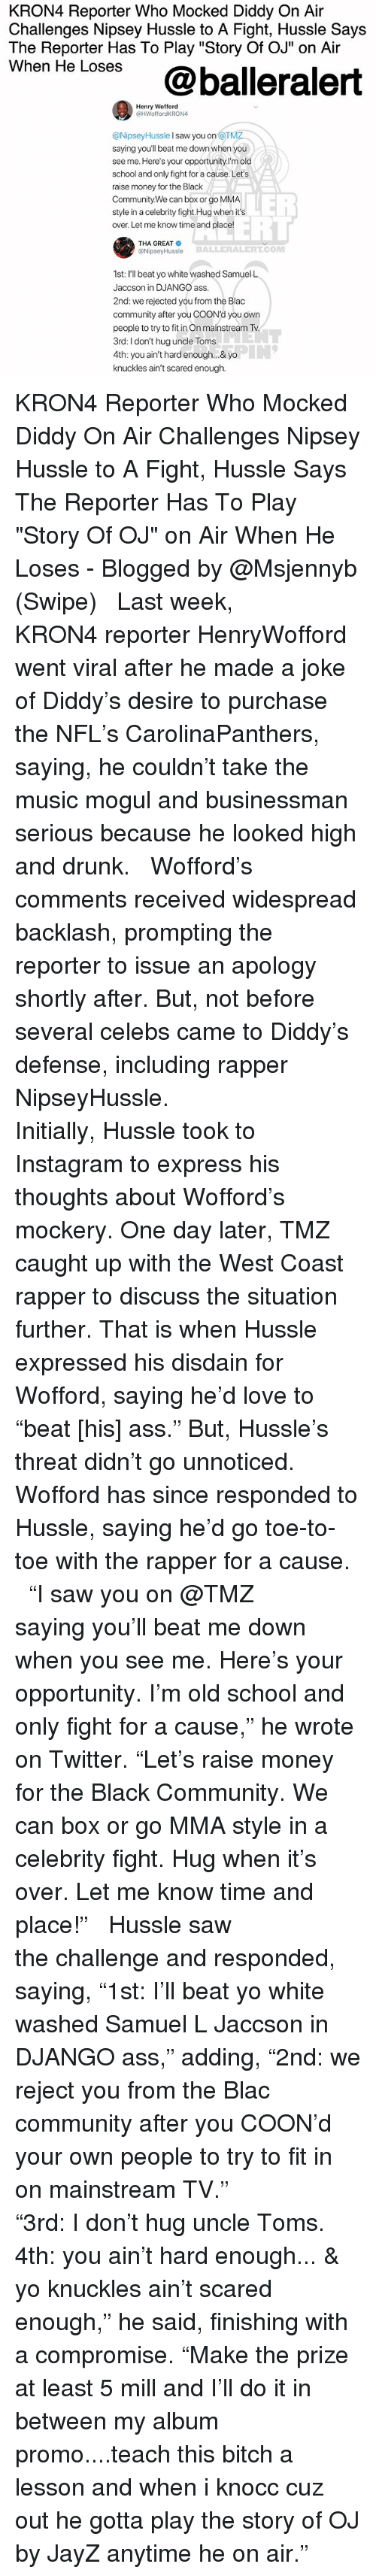 "Ass, Bitch, and Community: KRON4 Reporter Who Mocked Diddy On Air  Challenges Nipsey Hussle to A Fight, Hussle Says  The Reporter Has To Play ""Story Of OJ"" on Air  wnen He Loses@balleralert  Henry Wofford  @HWoffordKRON4  @NipseyHussle I saw you on @TM  saying you'll beat me down when you  see me. Here's your opportunity.l'm old  school and only fight for a cause. Let's  raise money for the Black  Community.We can box or go MMA  style in a celebrity fight.Hug when its  over. Let me know time and place!  LER  ELL  THA GREAT  @NipseyHussle  BALLERALERT.COM  1st: I'll beat yo white washed Samuel L  Jaccson in DJANGO ass  2nd: we rejected you from the Blac  community after you COON'd you own  people to try to in On mainstream Tv  3rd: I don't hug uncle Toms  4th: you ain't hard enough... & yo  knuckles ain't scared enough. KRON4 Reporter Who Mocked Diddy On Air Challenges Nipsey Hussle to A Fight, Hussle Says The Reporter Has To Play ""Story Of OJ"" on Air When He Loses - Blogged by @Msjennyb (Swipe) ⠀⠀⠀⠀⠀⠀⠀ ⠀⠀⠀⠀⠀⠀⠀ Last week, KRON4 reporter HenryWofford went viral after he made a joke of Diddy's desire to purchase the NFL's CarolinaPanthers, saying, he couldn't take the music mogul and businessman serious because he looked high and drunk. ⠀⠀⠀⠀⠀⠀⠀ ⠀⠀⠀⠀⠀⠀⠀ Wofford's comments received widespread backlash, prompting the reporter to issue an apology shortly after. But, not before several celebs came to Diddy's defense, including rapper NipseyHussle. ⠀⠀⠀⠀⠀⠀⠀ ⠀⠀⠀⠀⠀⠀⠀ Initially, Hussle took to Instagram to express his thoughts about Wofford's mockery. One day later, TMZ caught up with the West Coast rapper to discuss the situation further. That is when Hussle expressed his disdain for Wofford, saying he'd love to ""beat [his] ass."" But, Hussle's threat didn't go unnoticed. Wofford has since responded to Hussle, saying he'd go toe-to-toe with the rapper for a cause. ⠀⠀⠀⠀⠀⠀⠀ ⠀⠀⠀⠀⠀⠀⠀ ""I saw you on @TMZ saying you'll beat me down when you see me. Here's your opportunity. I'm old school and only fight for a cause,"" he wrote on Twitter. ""Let's raise money for the Black Community. We can box or go MMA style in a celebrity fight. Hug when it's over. Let me know time and place!"" ⠀⠀⠀⠀⠀⠀⠀ ⠀⠀⠀⠀⠀⠀⠀ Hussle saw the challenge and responded, saying, ""1st: I'll beat yo white washed Samuel L Jaccson in DJANGO ass,"" adding, ""2nd: we reject you from the Blac community after you COON'd your own people to try to fit in on mainstream TV."" ⠀⠀⠀⠀⠀⠀⠀ ⠀⠀⠀⠀⠀⠀⠀ ""3rd: I don't hug uncle Toms. 4th: you ain't hard enough... & yo knuckles ain't scared enough,"" he said, finishing with a compromise. ""Make the prize at least 5 mill and I'll do it in between my album promo....teach this bitch a lesson and when i knocc cuz out he gotta play the story of OJ by JayZ anytime he on air."""